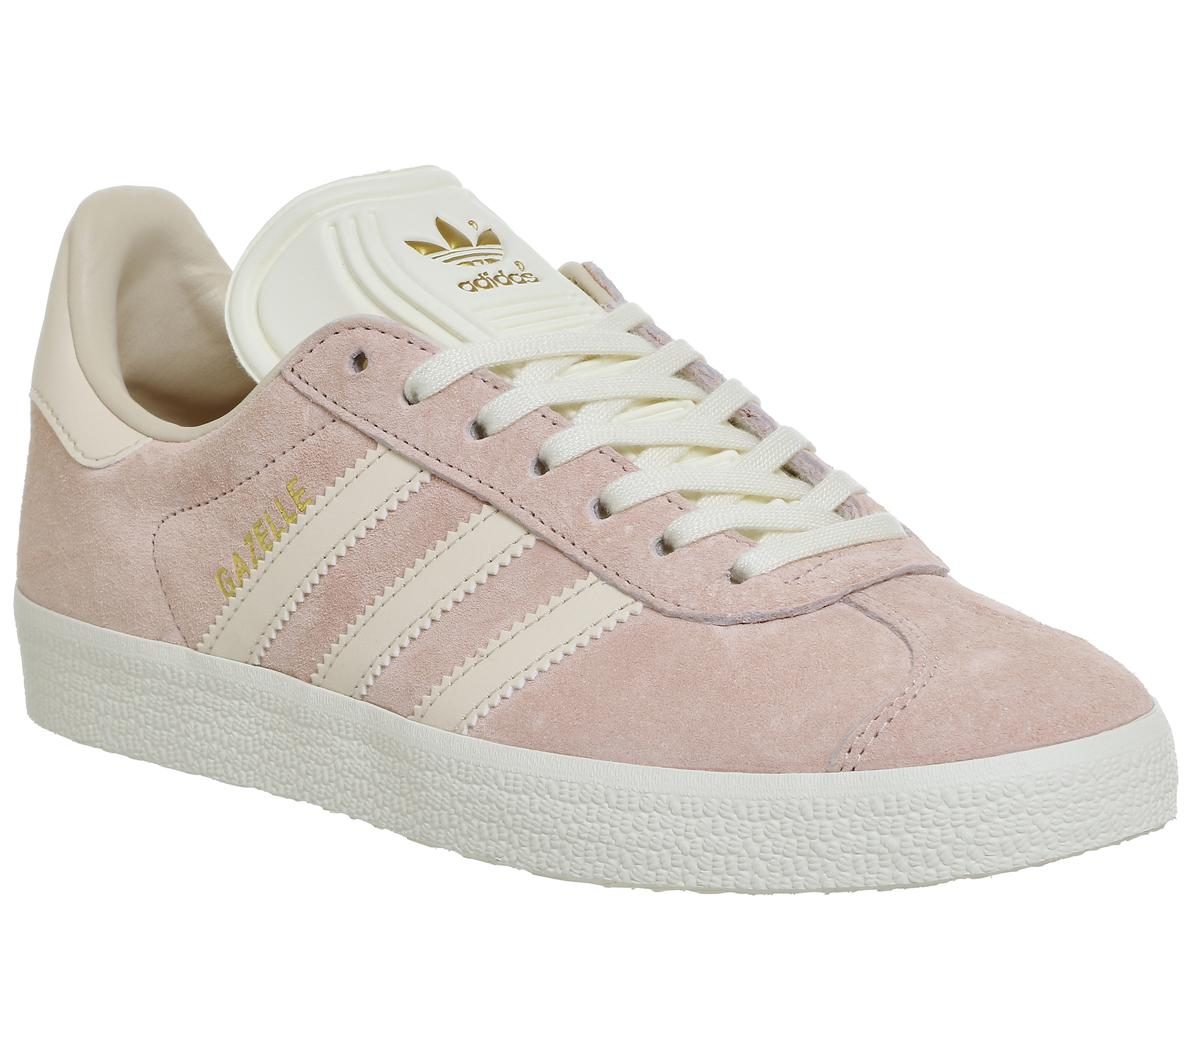 Adidas Originals Gazelle White Pink Trainers Vapour & Womens